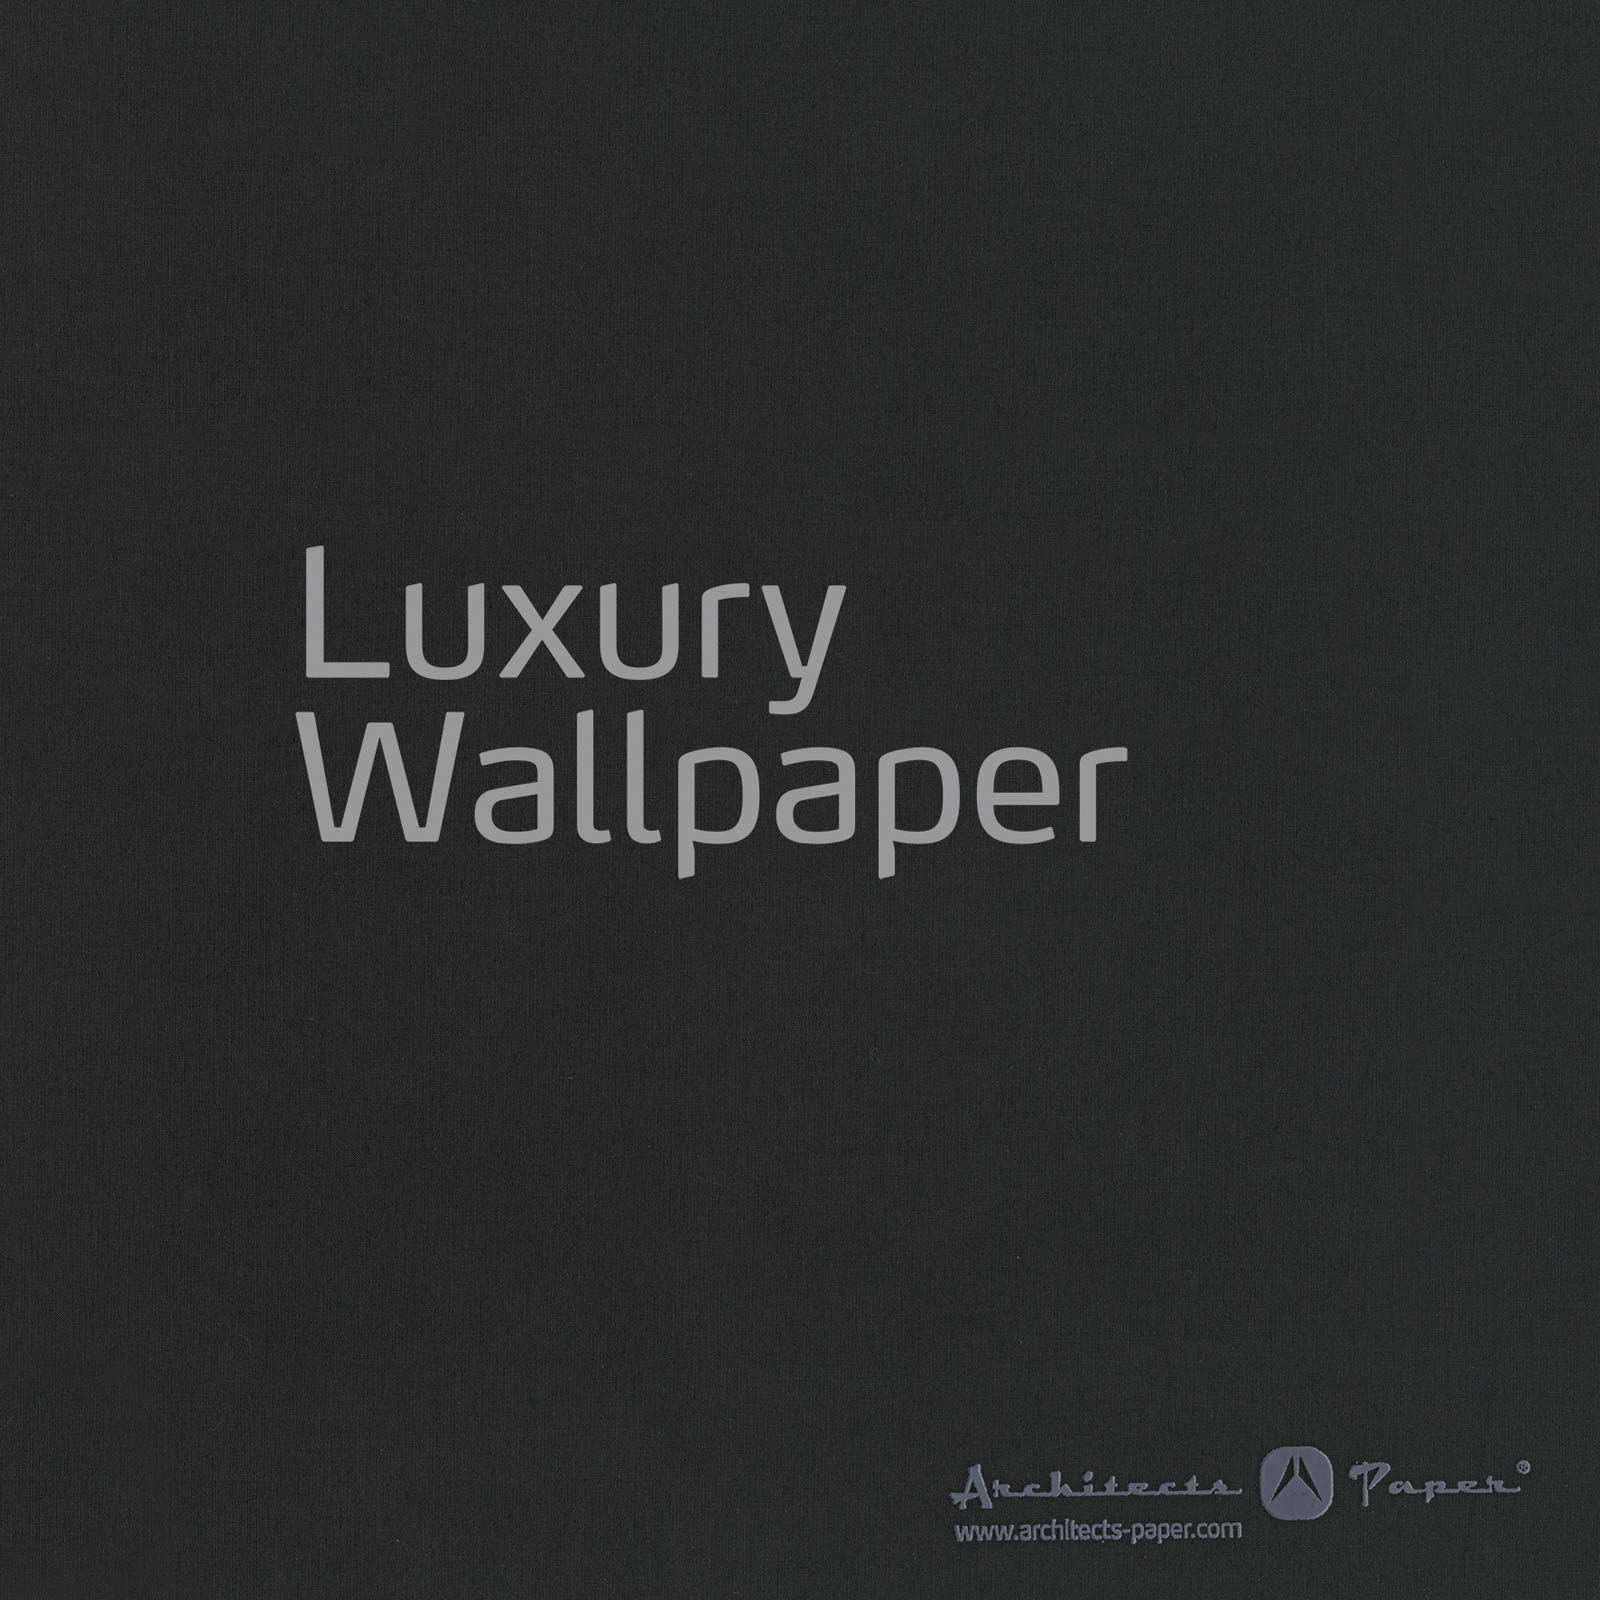 Architects Paper Luxury Wallpaper